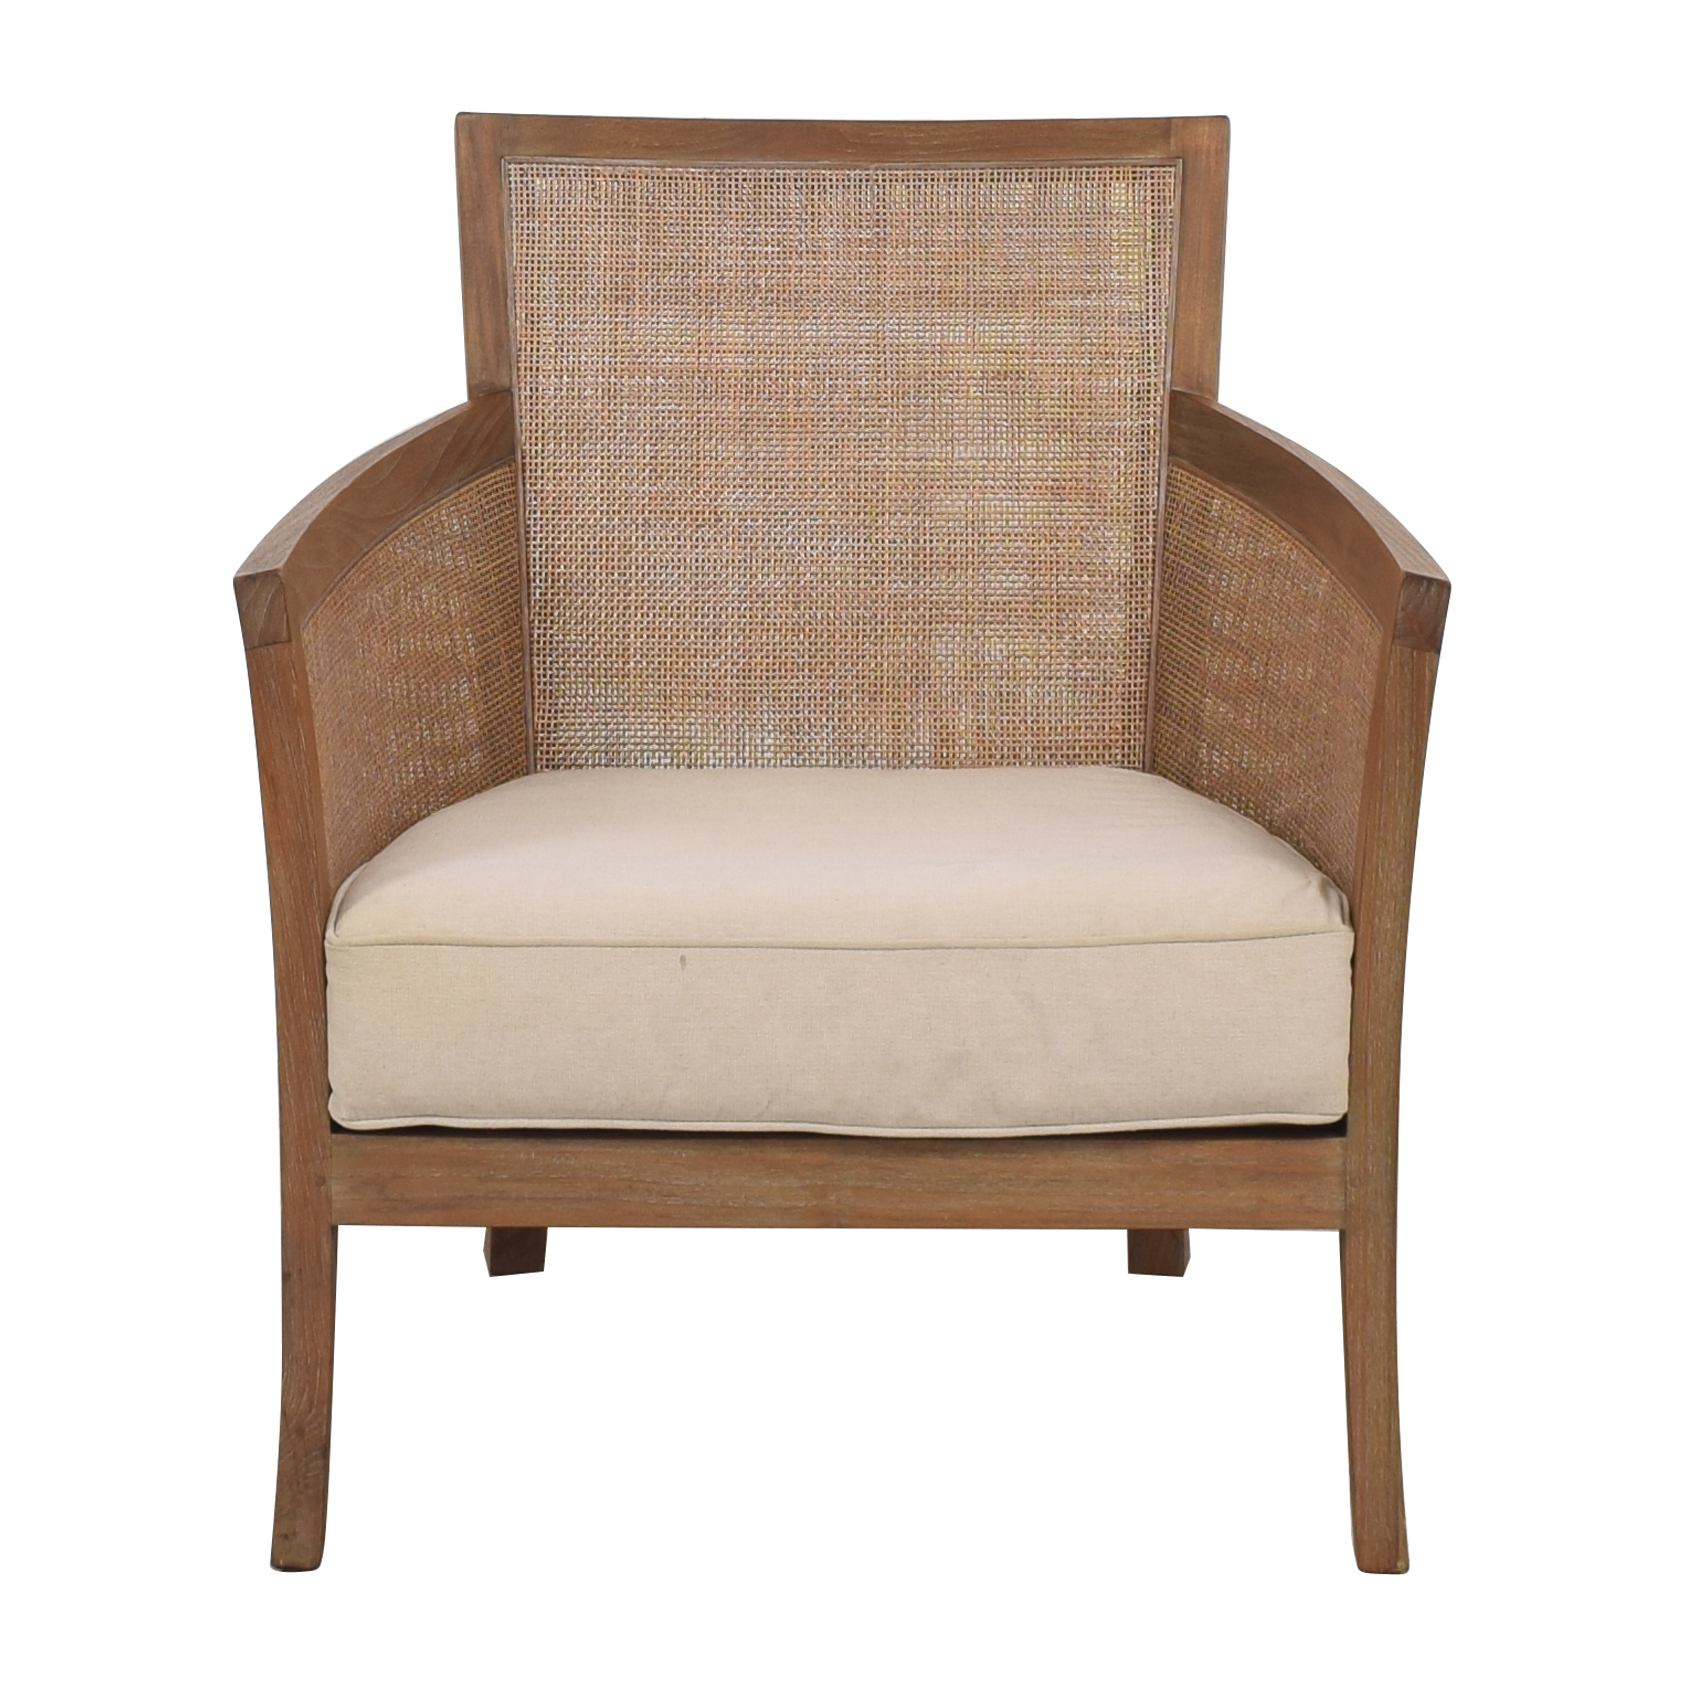 Crate & Barrel Crate & Barrel Blake Accent Chair ma